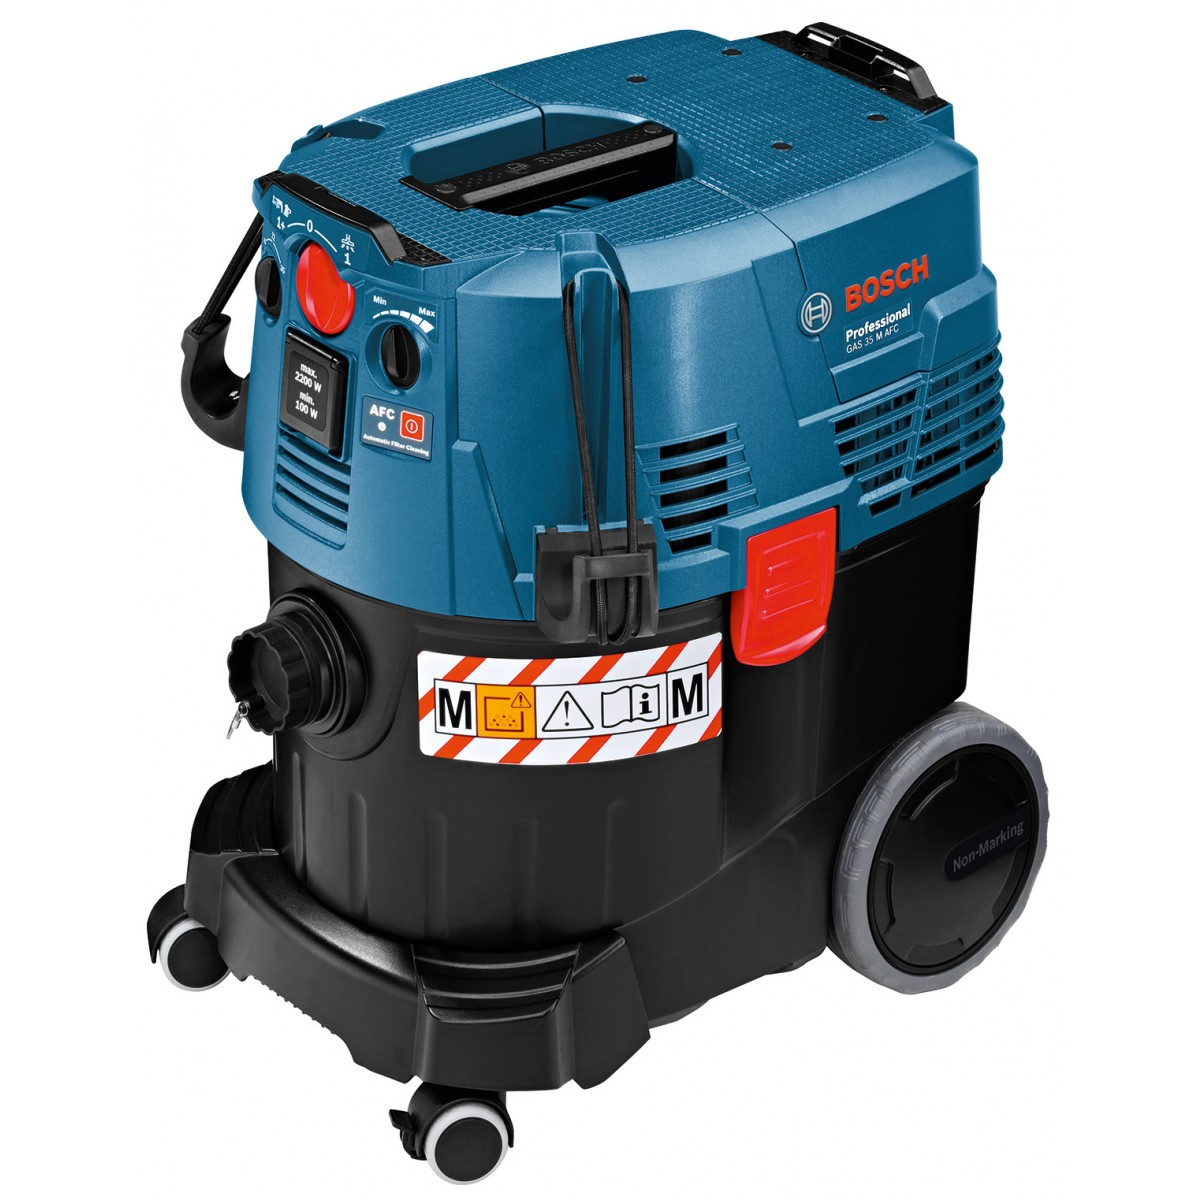 bosch gas 35 m afc 110v m class dust extractor howe tools uk. Black Bedroom Furniture Sets. Home Design Ideas